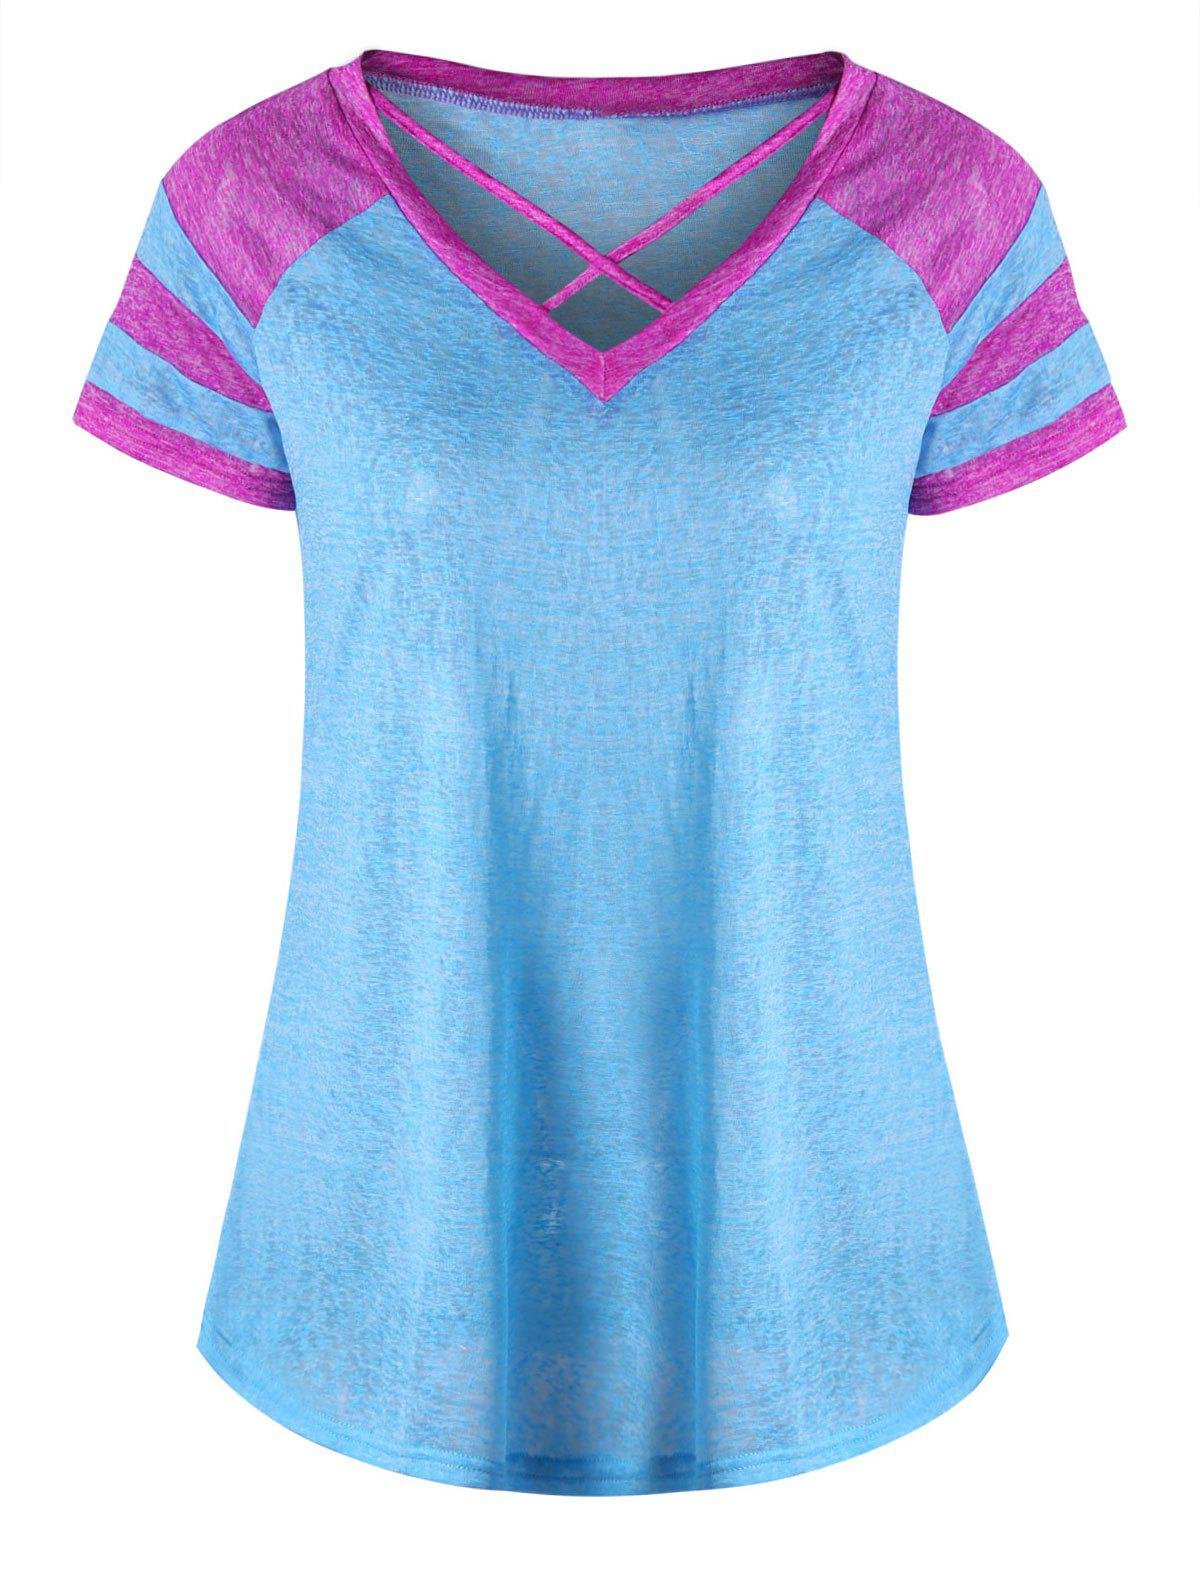 Lattice Neck Two Tone TopWOMEN<br><br>Size: 2XL; Color: LAKE BLUE; Material: Polyester,Spandex; Shirt Length: Regular; Sleeve Length: Short; Collar: V-Neck; Style: Casual; Season: Summer; Pattern Type: Solid; Weight: 0.1500kg; Package Contents: 1 x T-shirt;